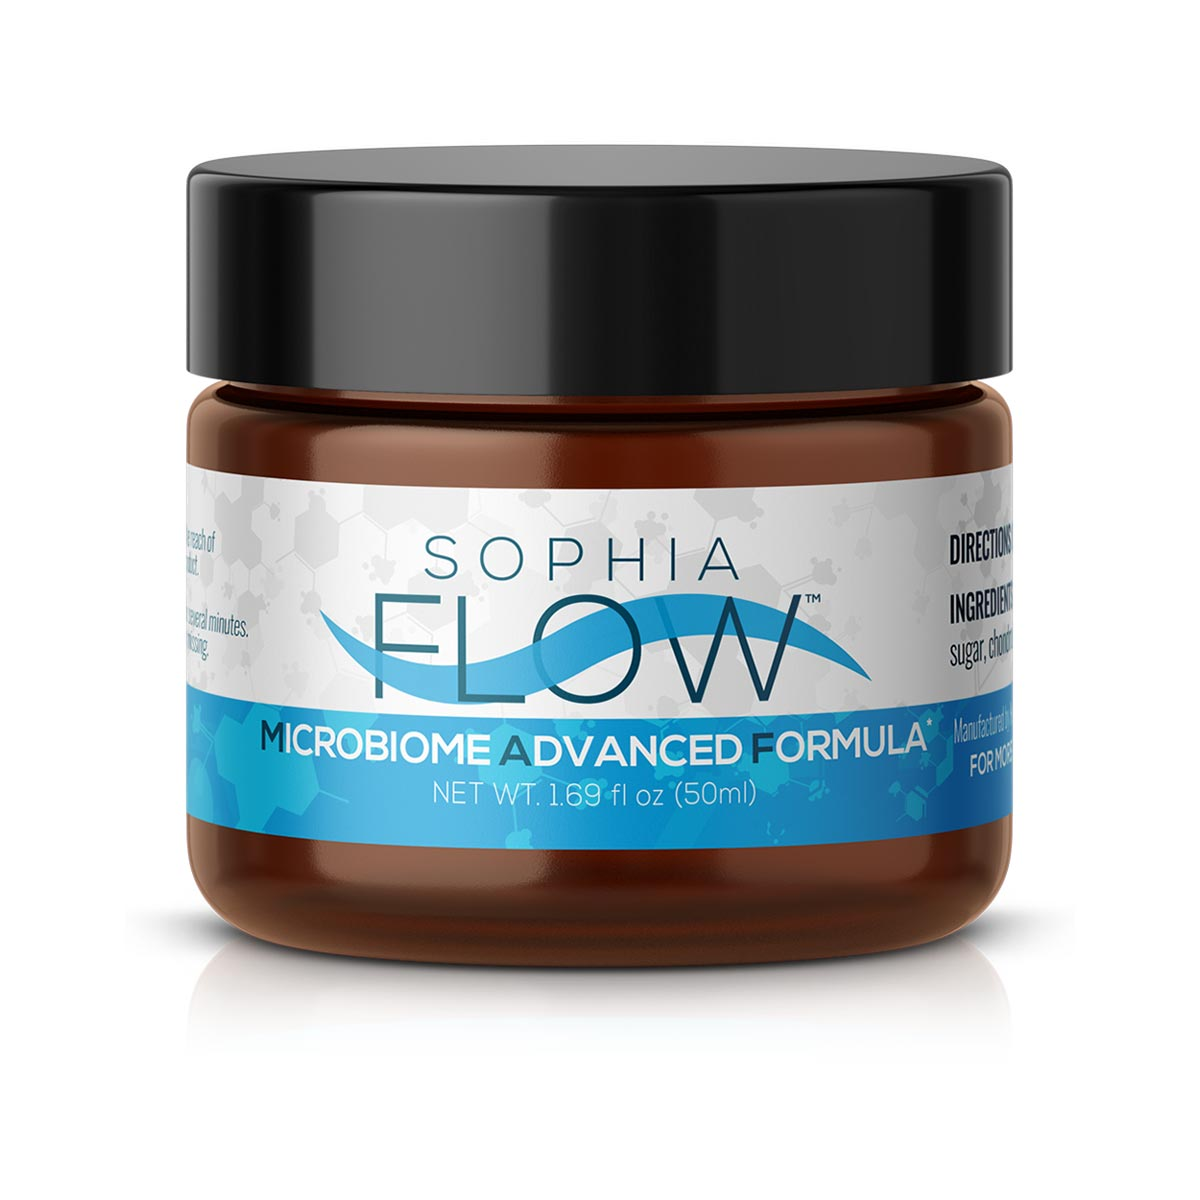 Sophia Flow Microbiome Advanced Formula